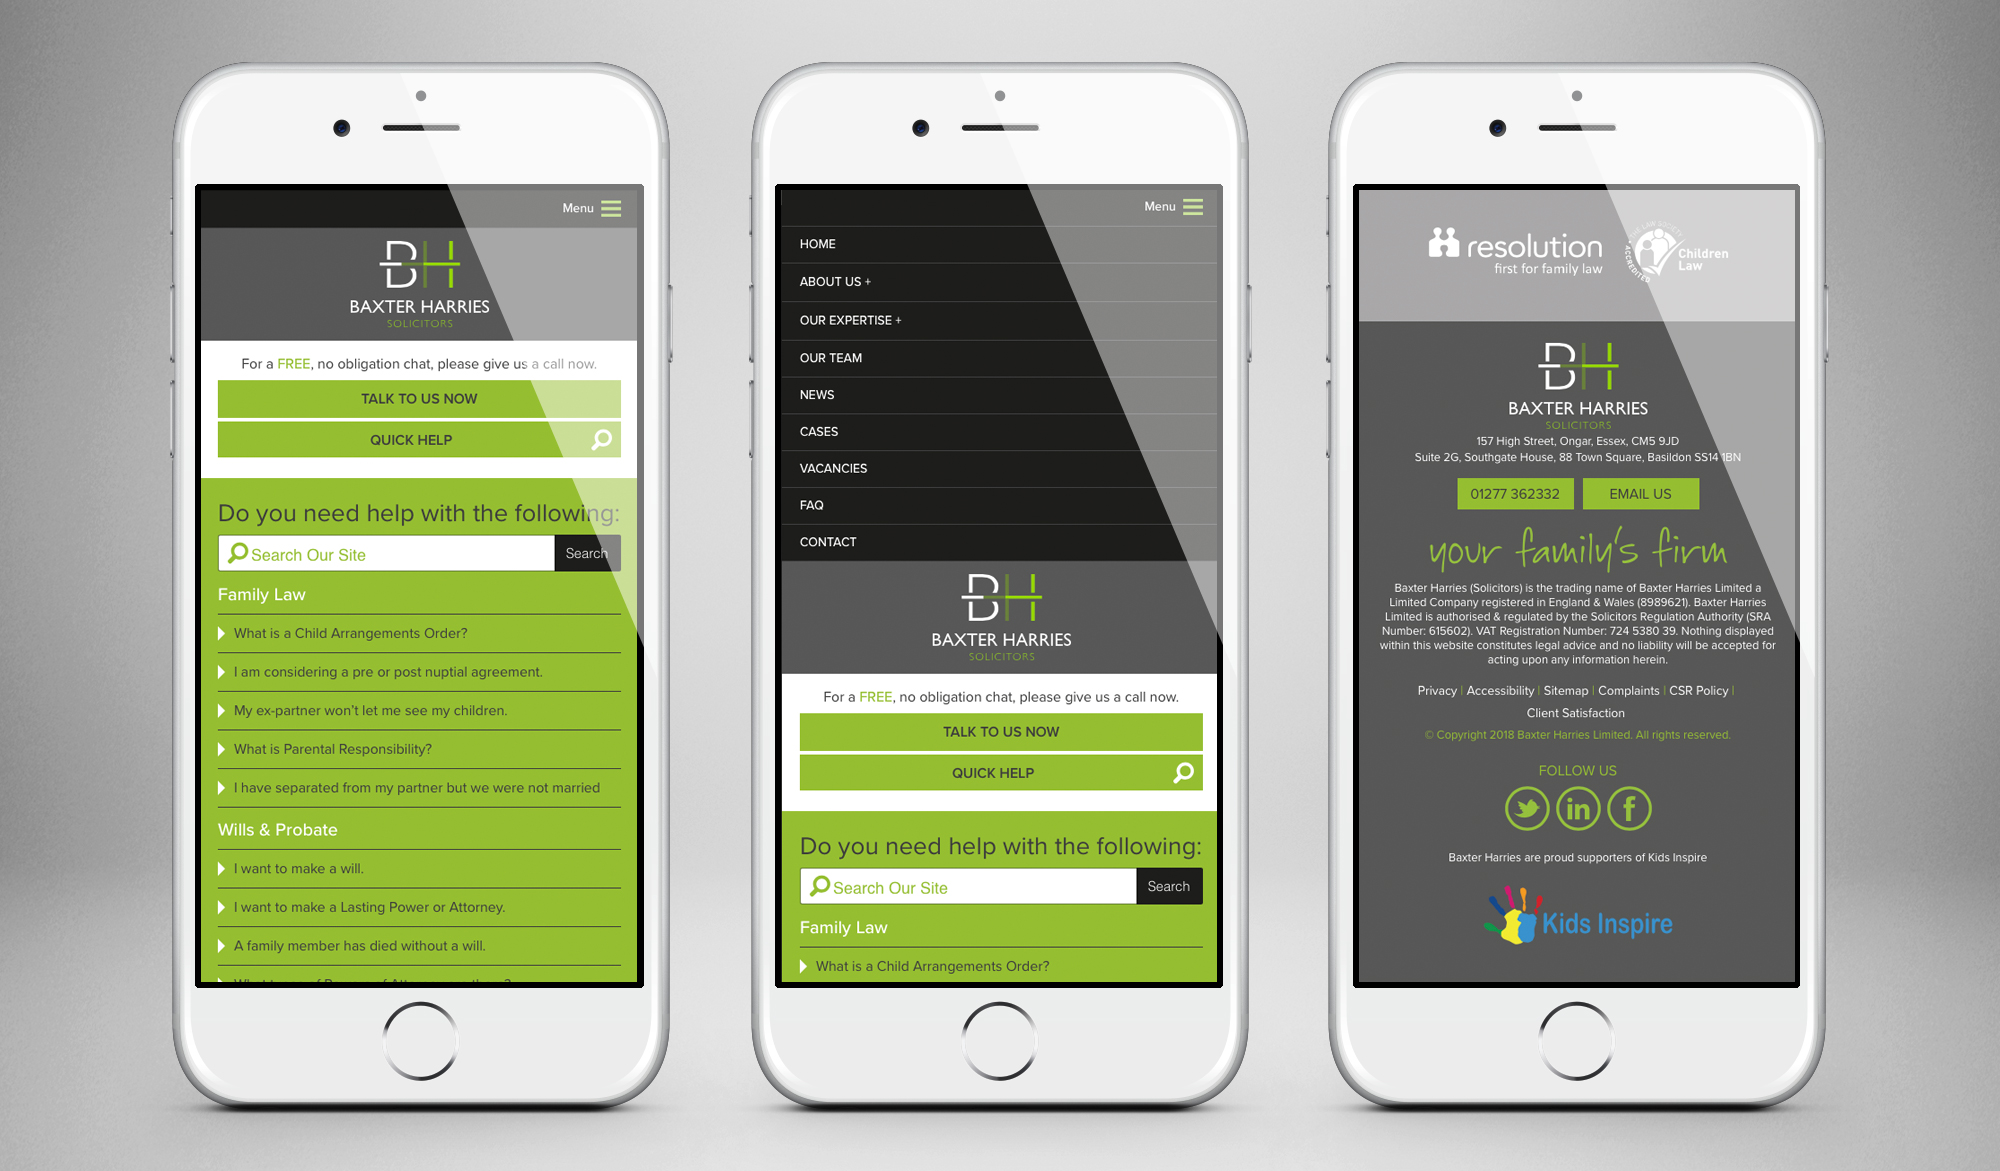 Baxter Harries Solicitors mobile